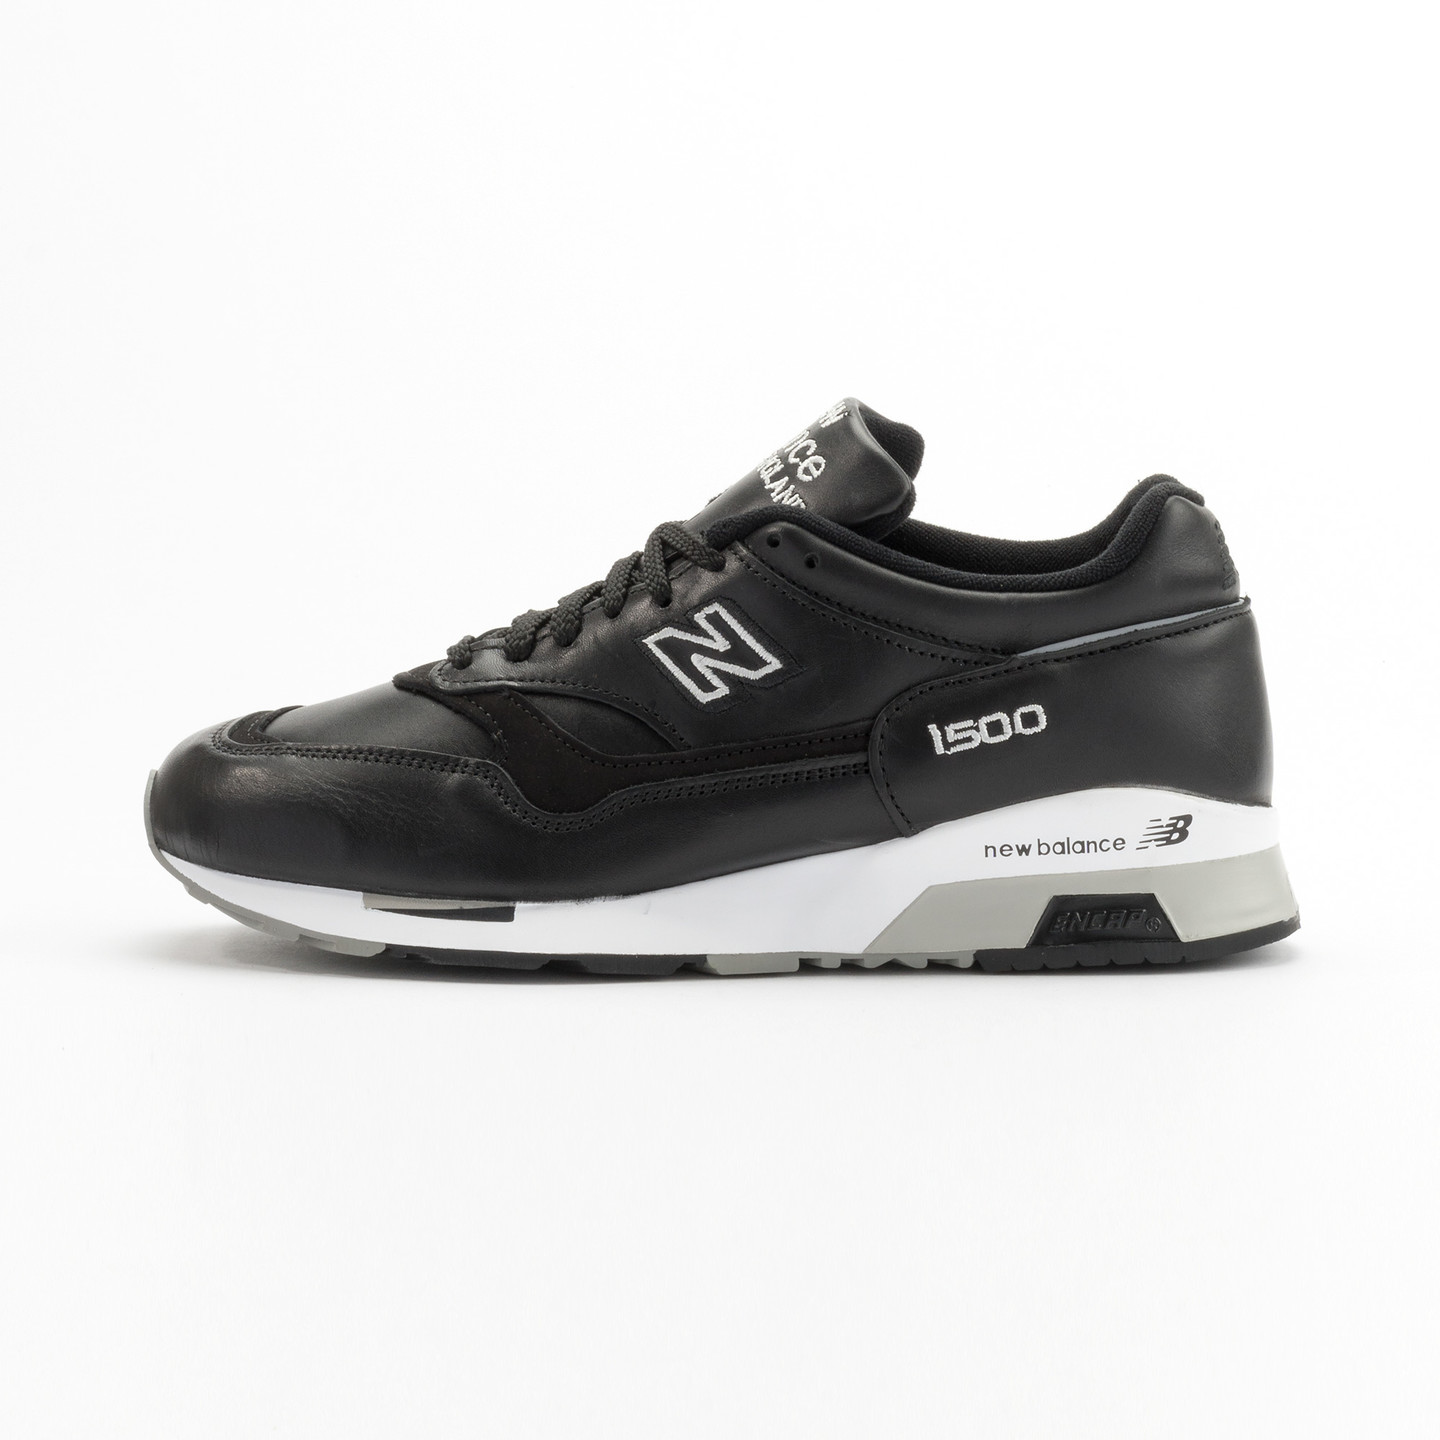 New Balance M1500 BK - Made in England Black / White Shadow M1500BK-43